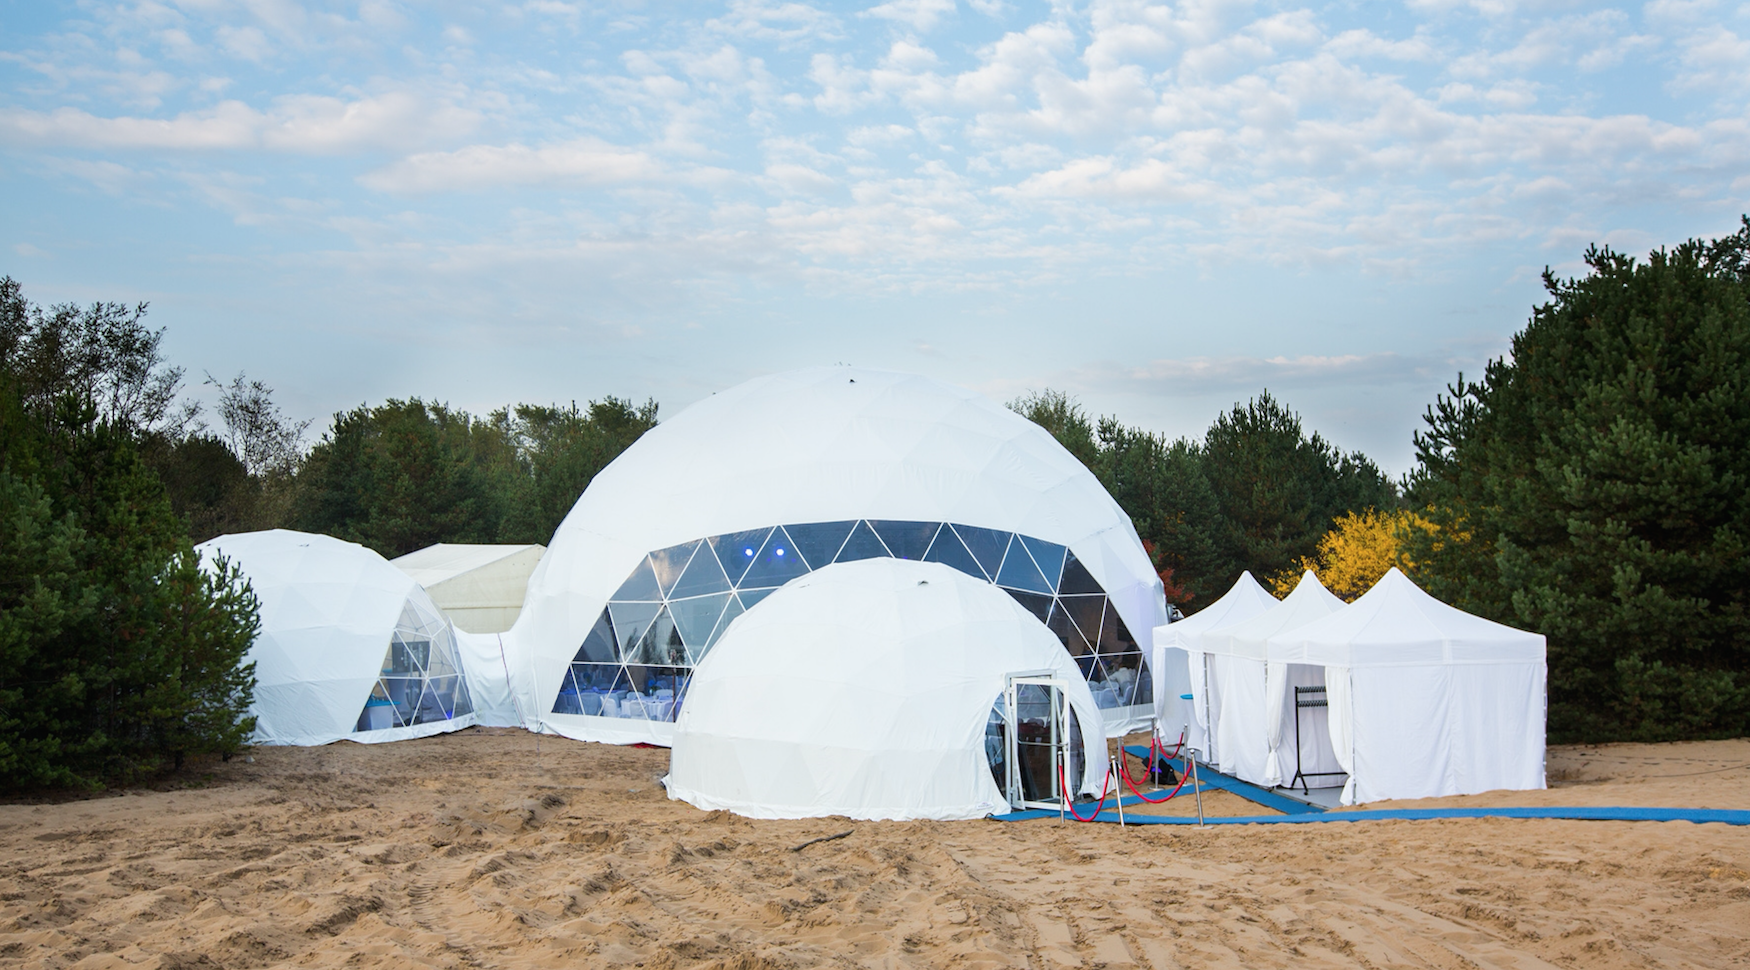 Geodesic dome tents on the desert by Polidomes